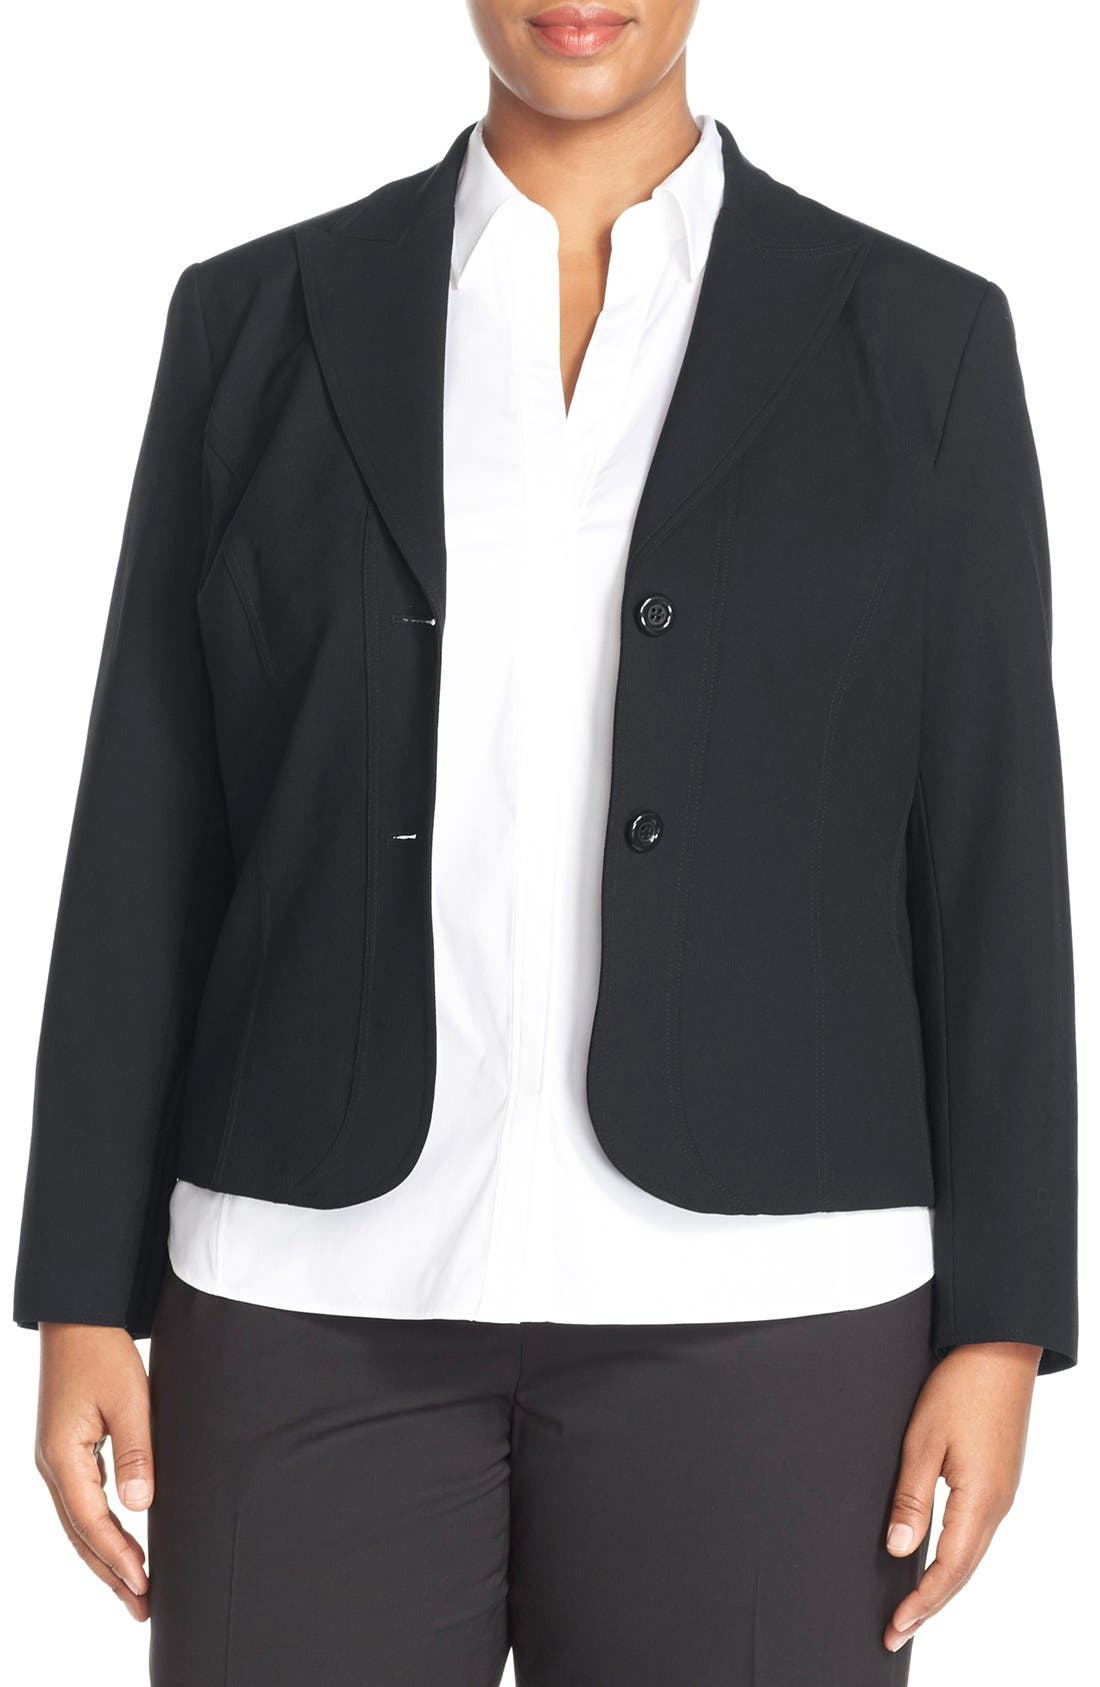 LAFAYETTE 148 NEW YORK 'Gladstone' Stretch Wool Jacket